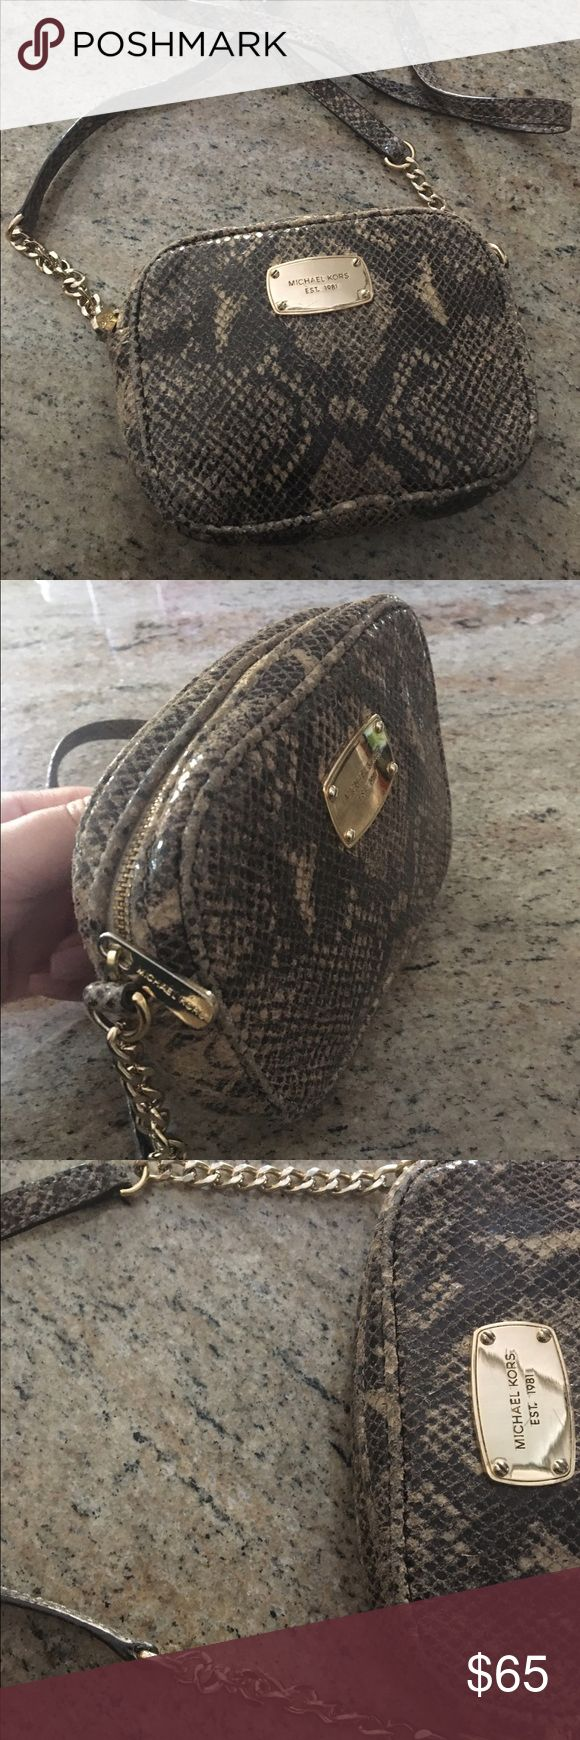 Michael Kors Jetset Crossbody Purse This super-cute purse pairs perfectly with any outfit and is great for any occasion! It has a beautiful snakeskin print and gold accents. This item was well-loved but still in good shape, originally purchased for around $150. Michael Kors Bags Crossbody Bags